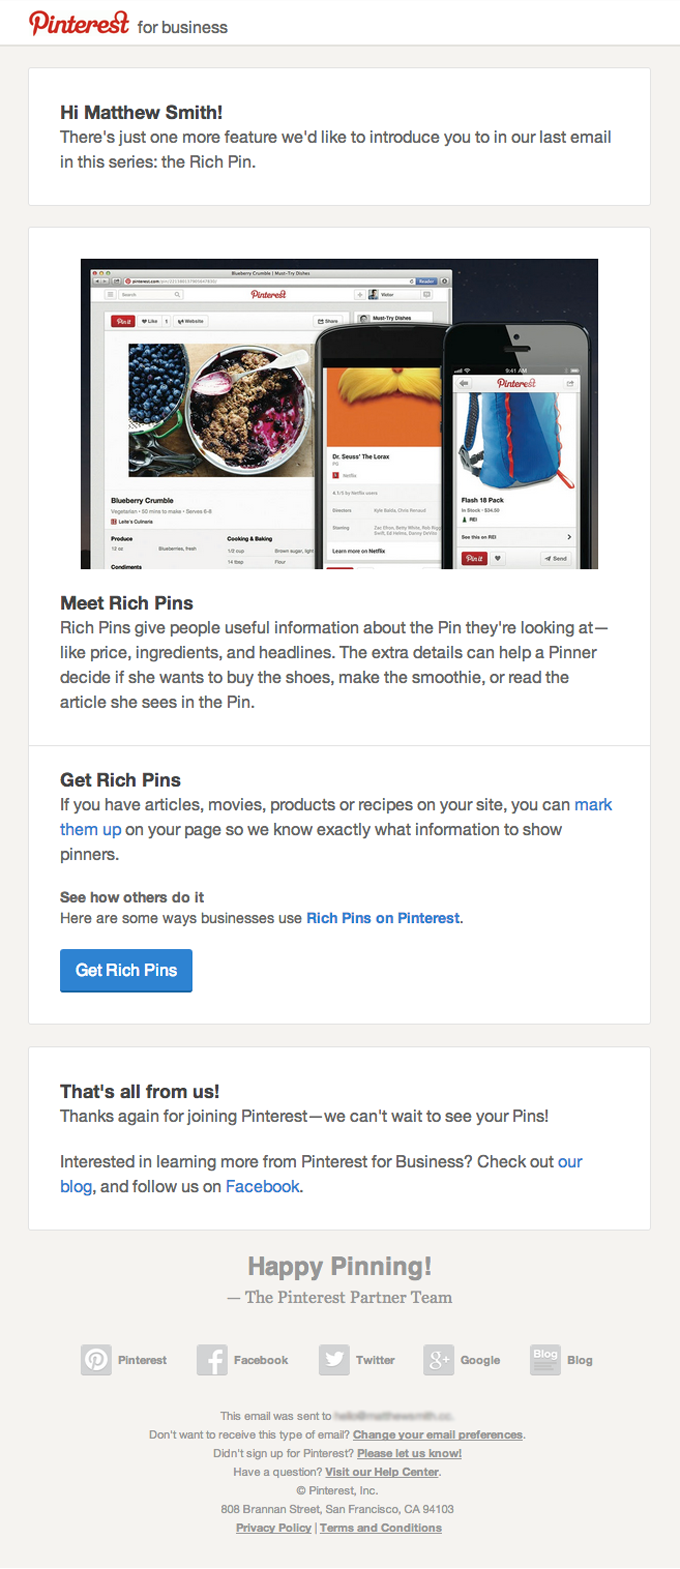 getting-started-onboarding-email-series-from-pinterest-3